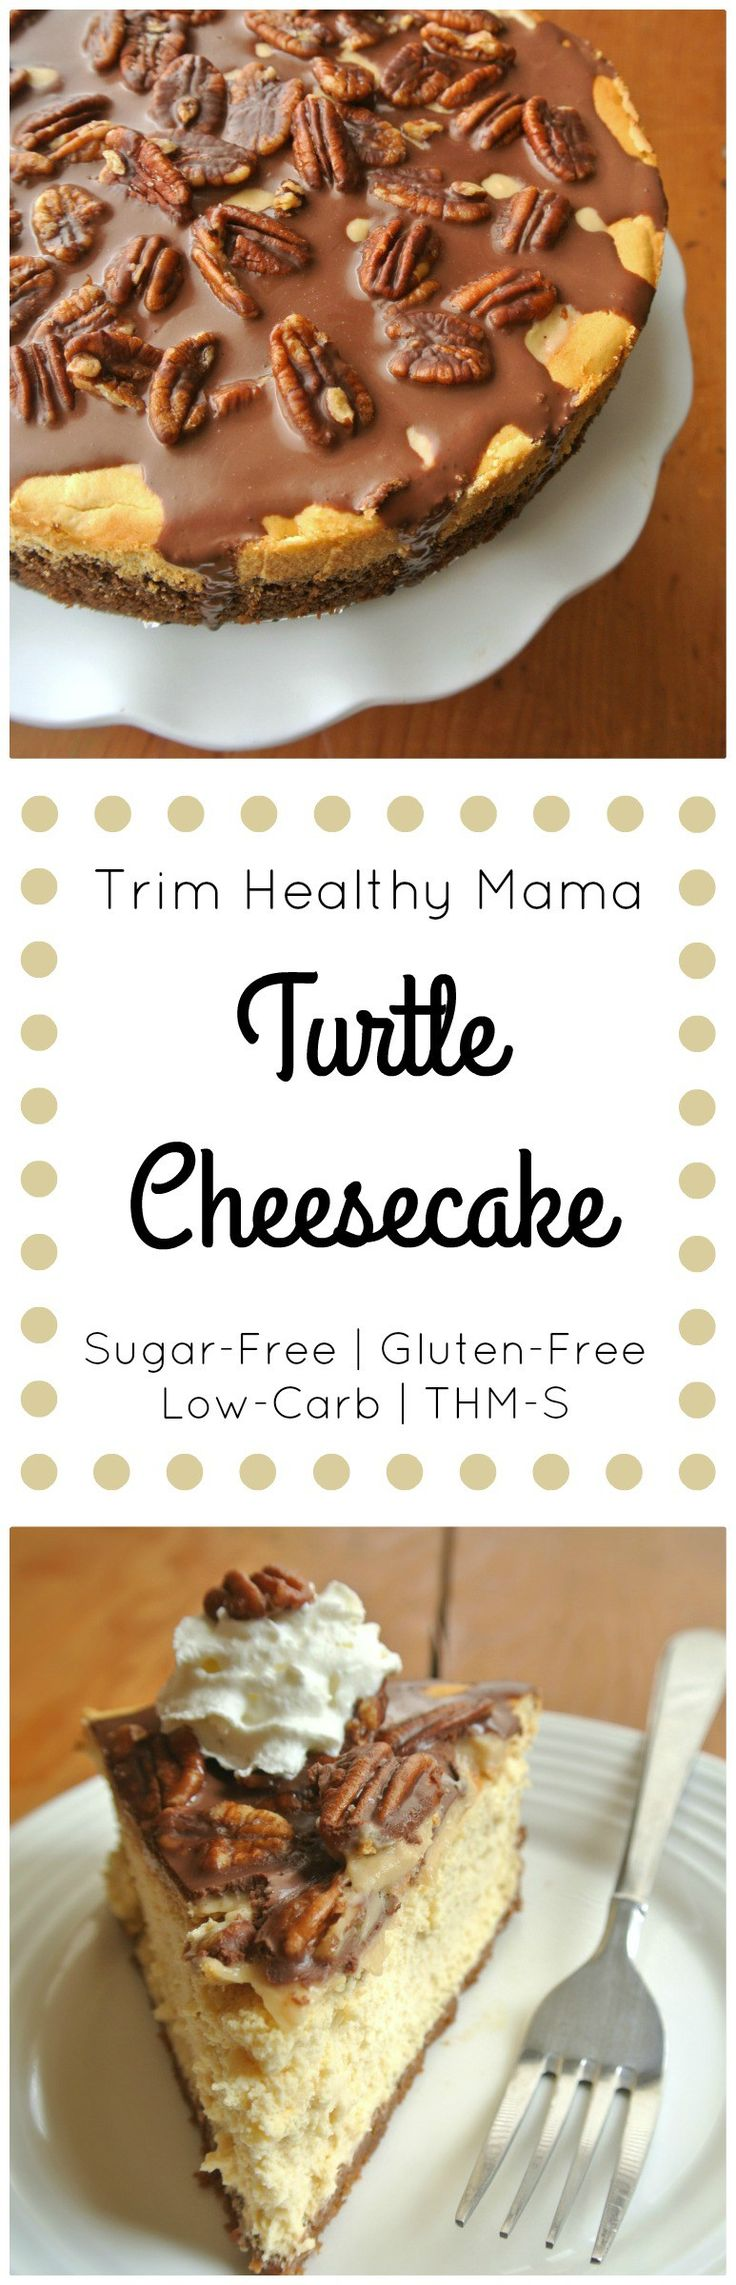 THM Turtle Cheesecake {S} - perfect for birthdays and special events! | MargeauxVittoria.com